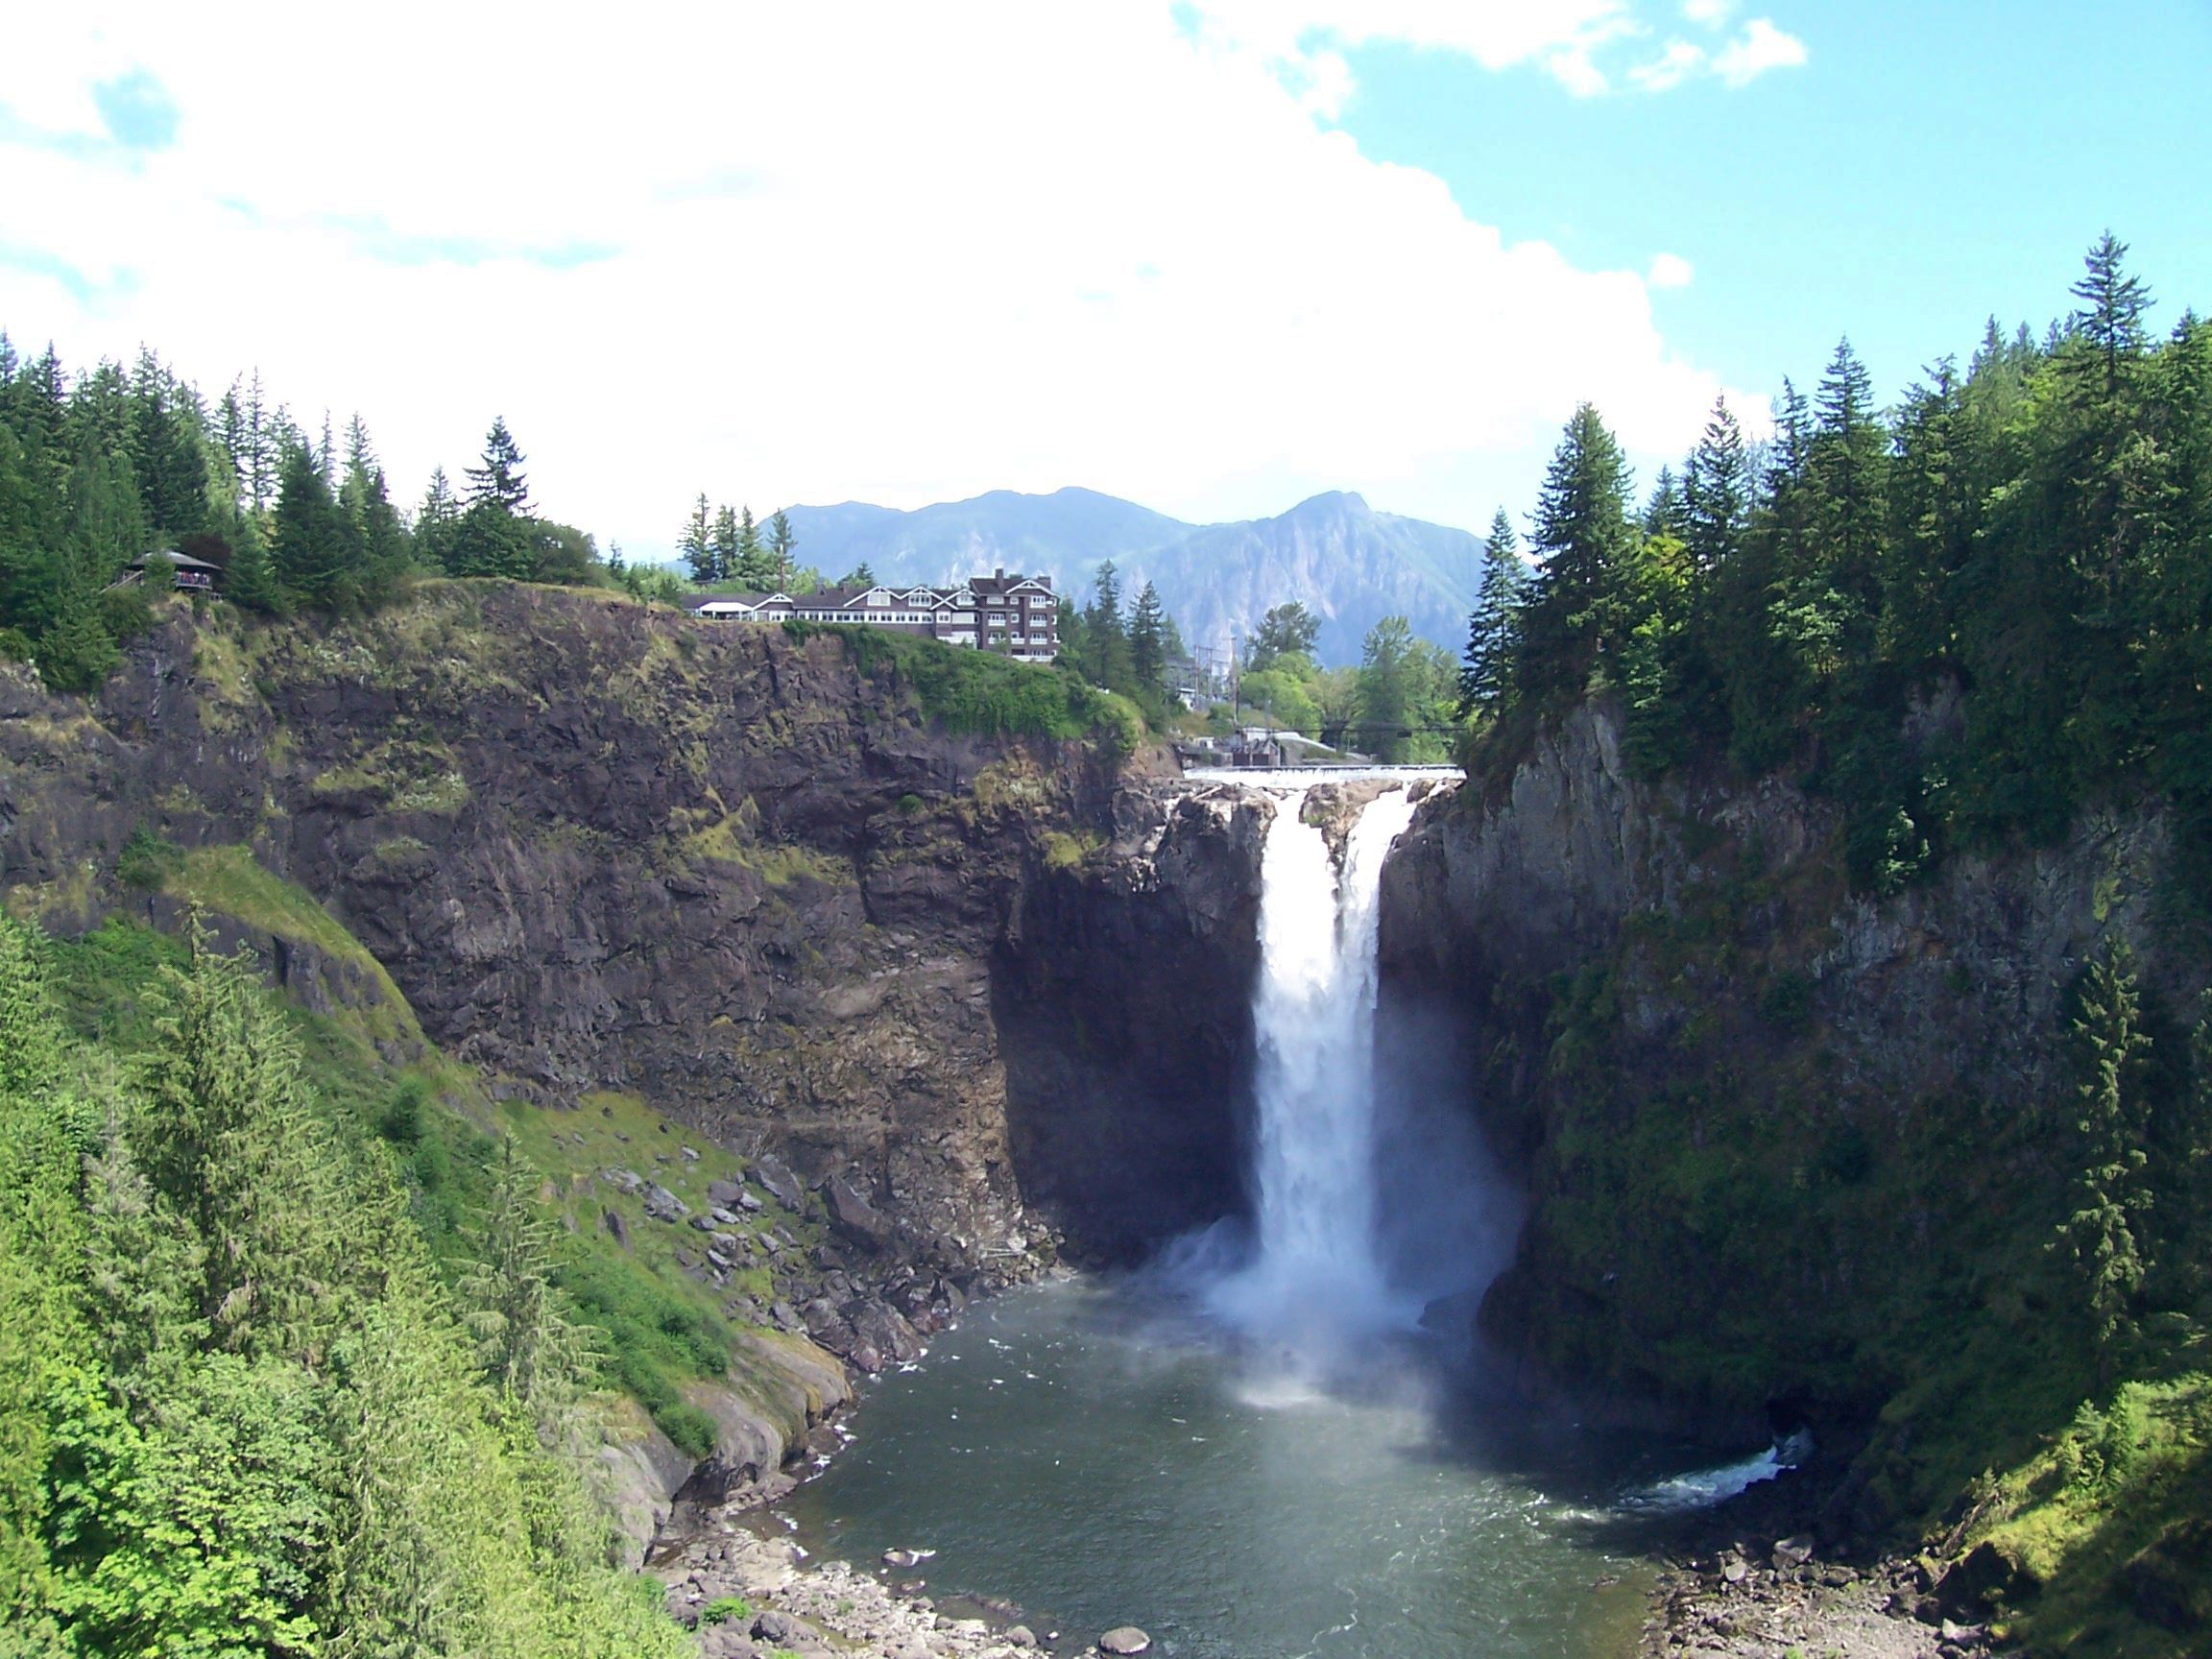 Snoqualmie Falls with Mount Si